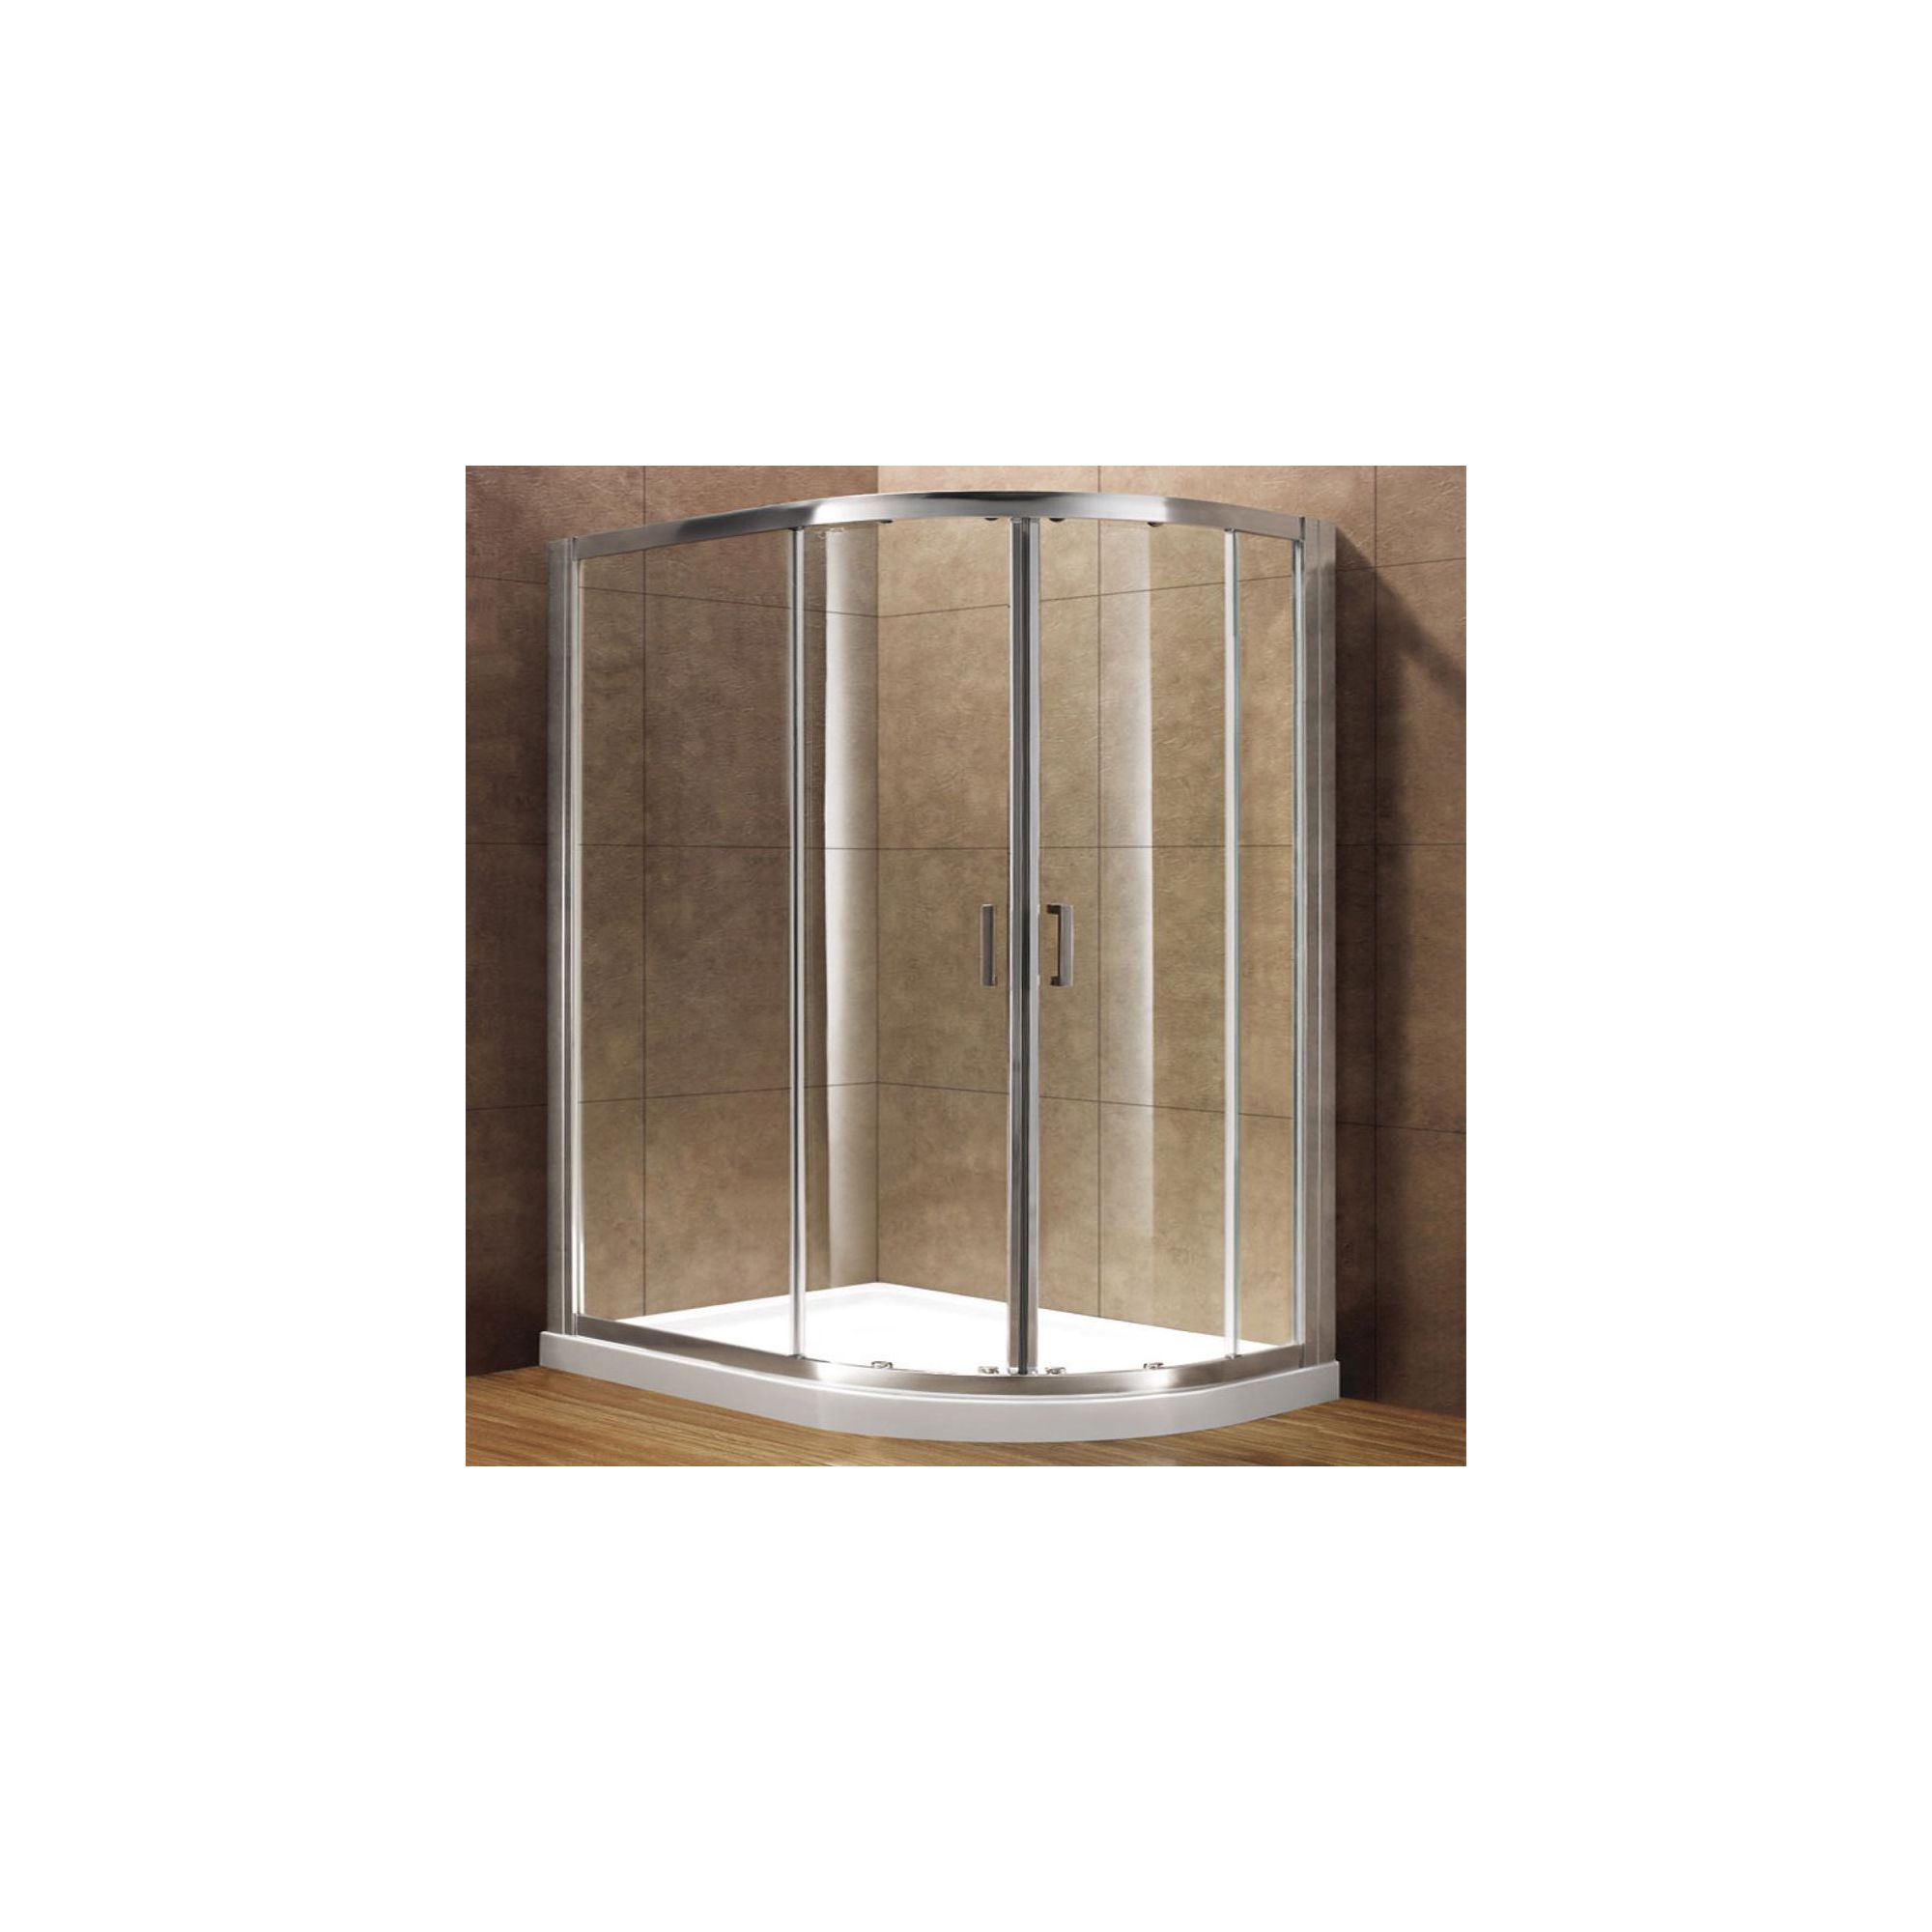 Duchy Premium Double Offset Quadrant Door Shower Enclosure, 1200mm x 900mm, 8mm Glass, Low Profile Tray, Right Handed at Tesco Direct